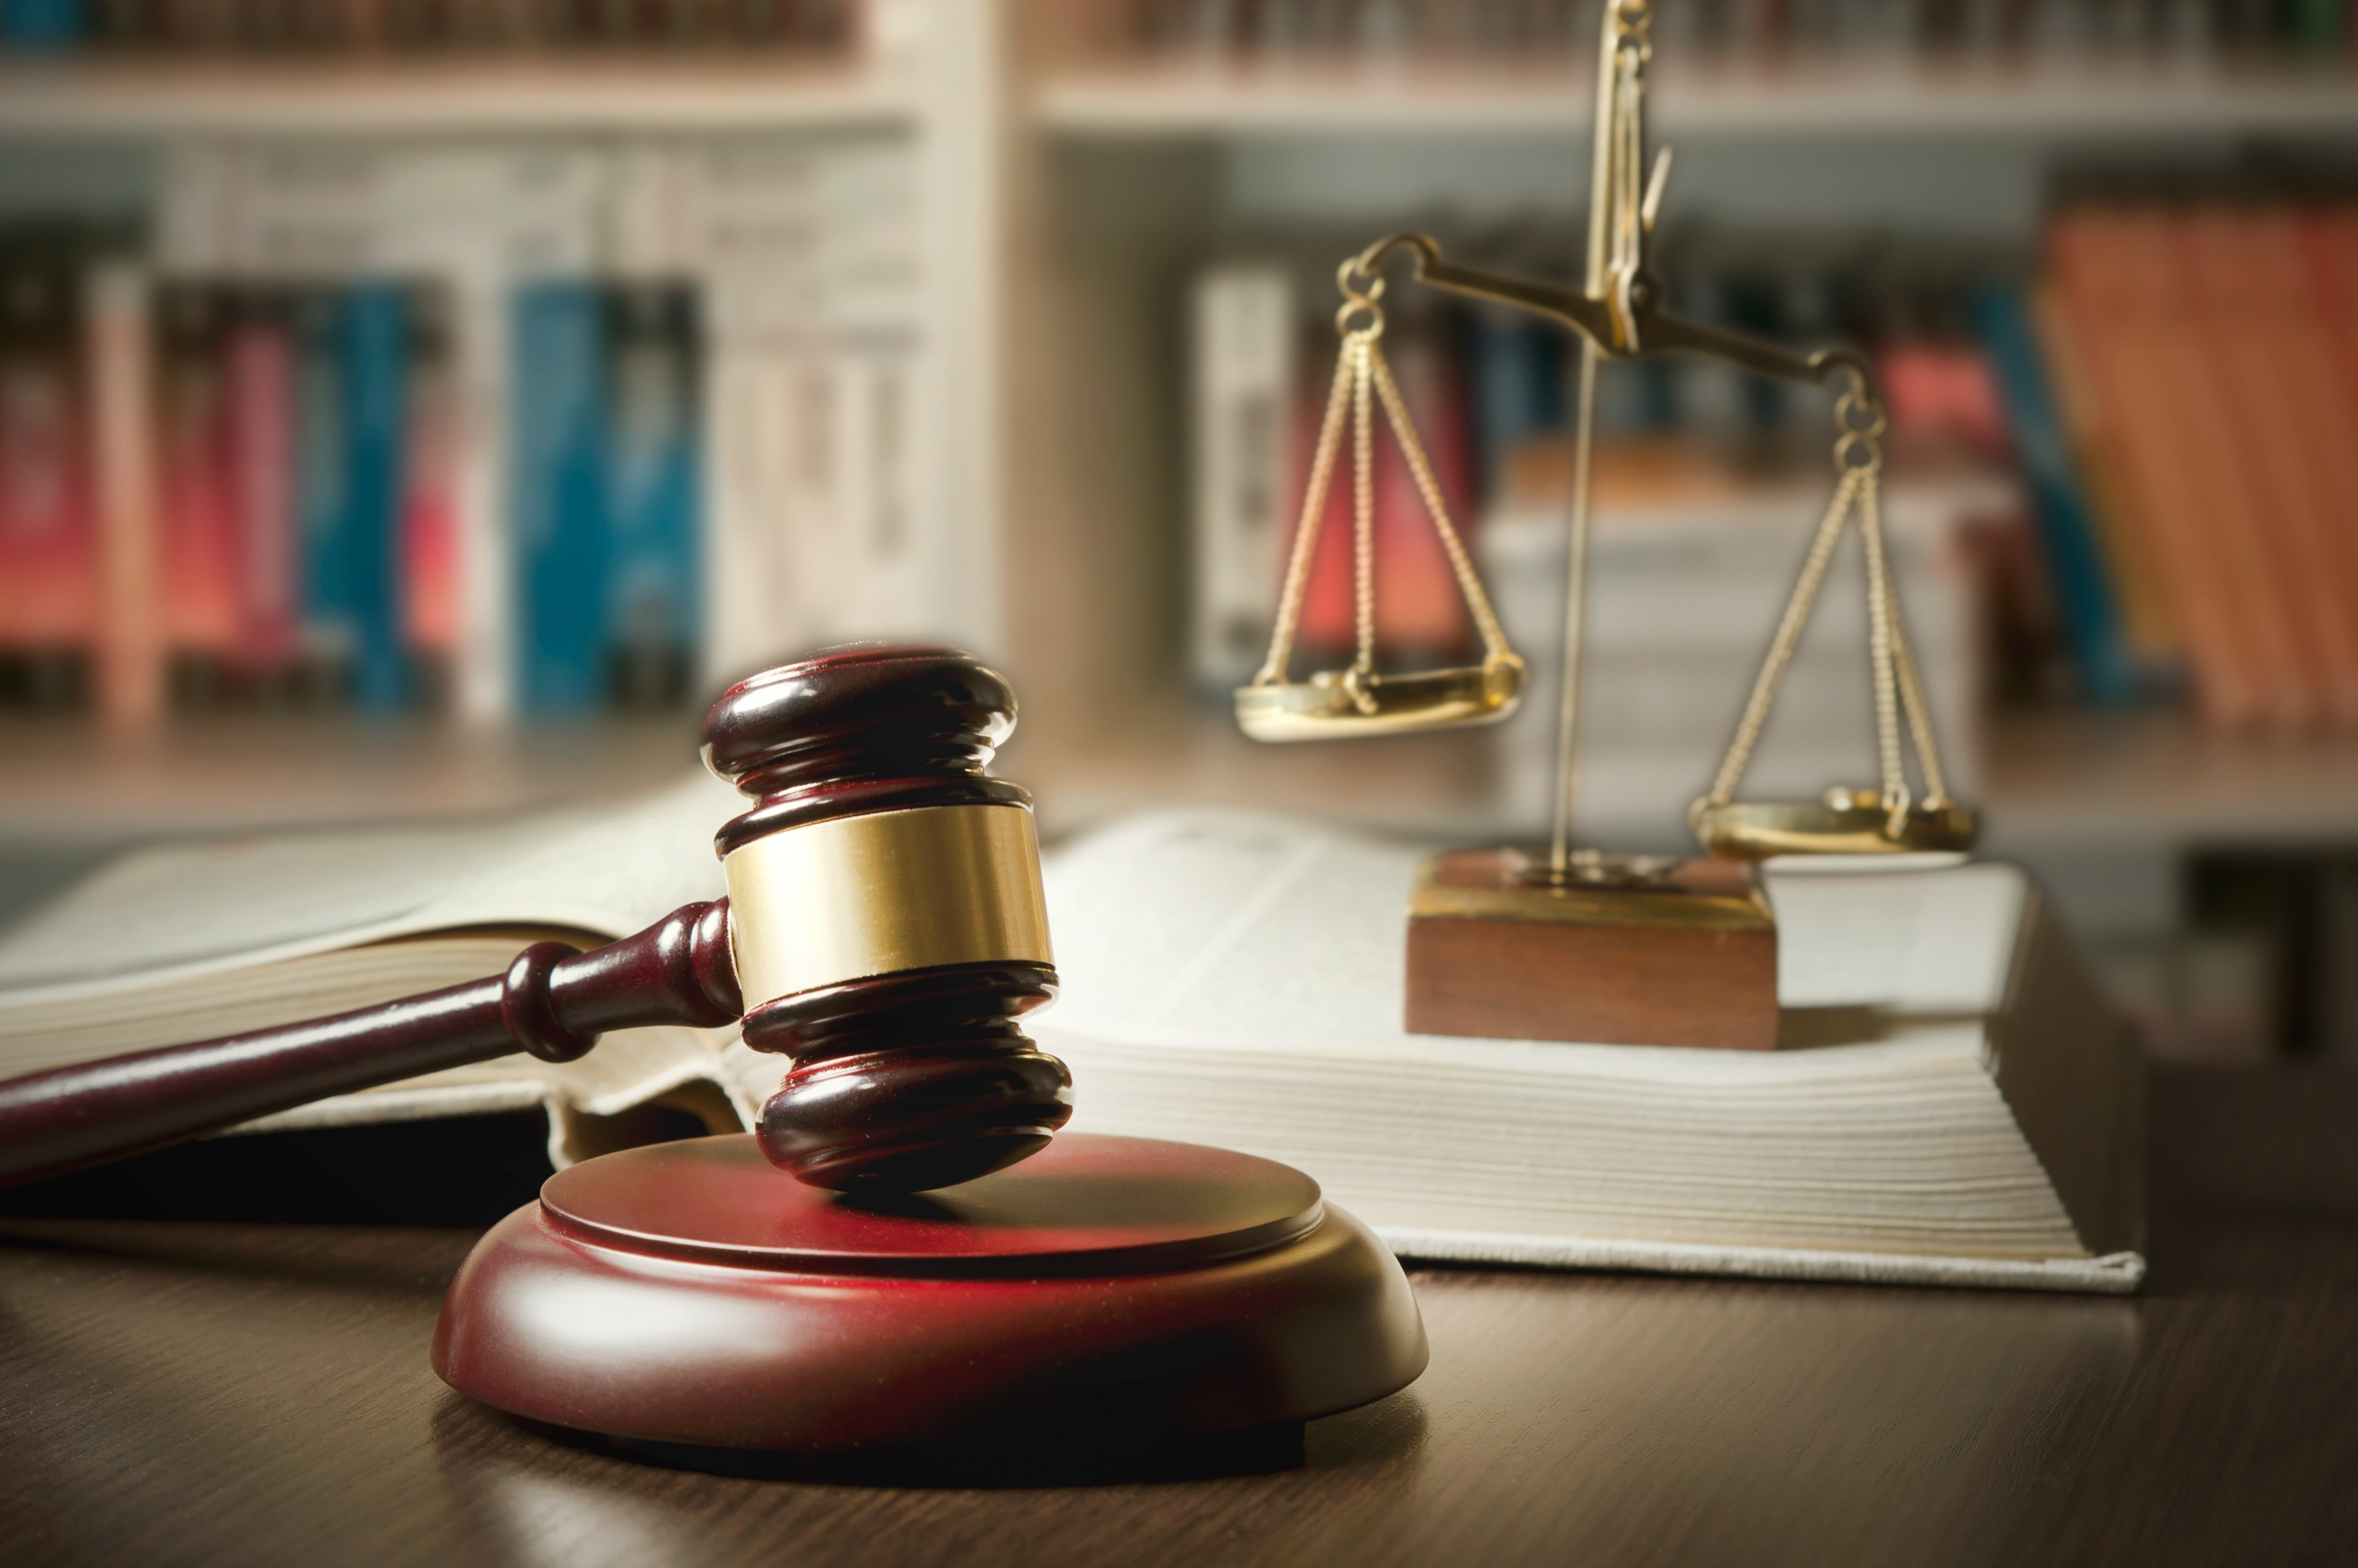 Judge gavel and scale in court | Photo: Shutterstock.com